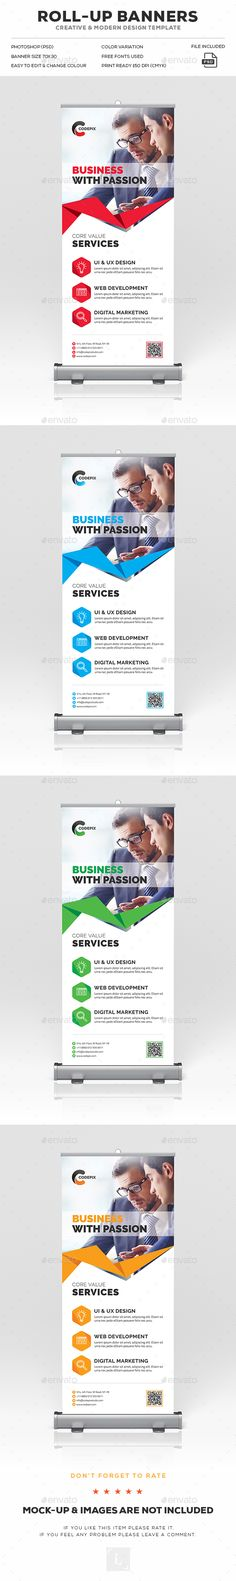 Corporate Roll-Up Banner Template PSD. Download here: https://graphicriver.net/item/corporate-rollup-banner/17043156?ref=ksioks